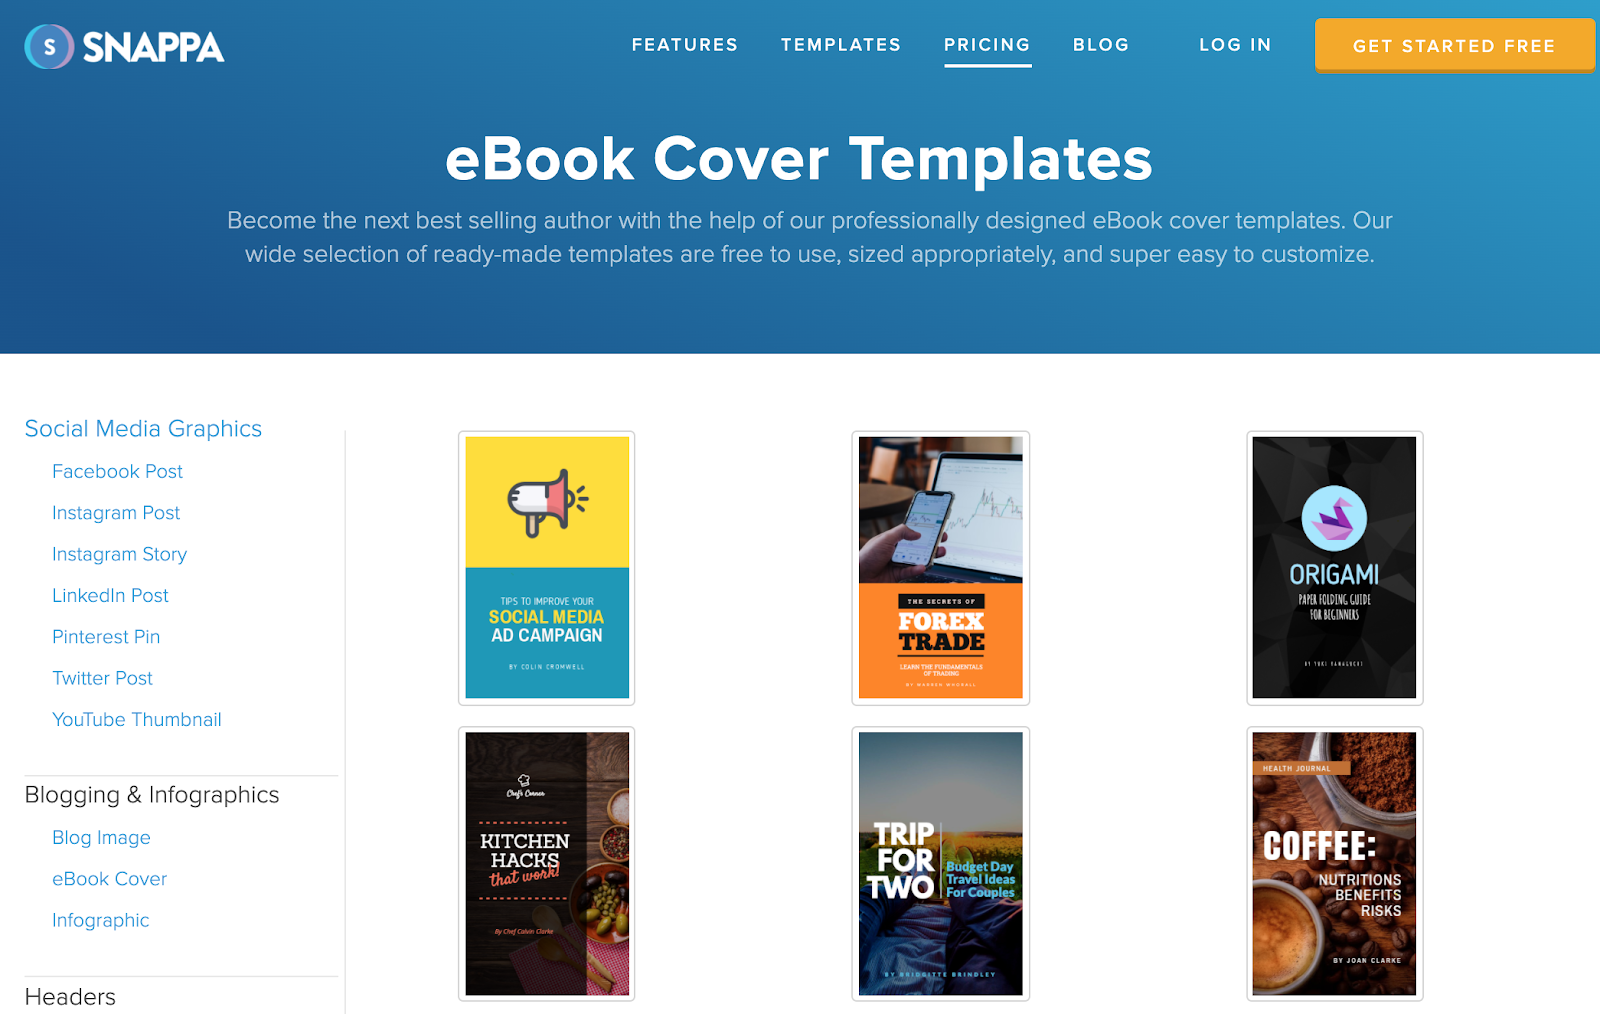 Snappa – free ebook cover templates you can use in your own projects.